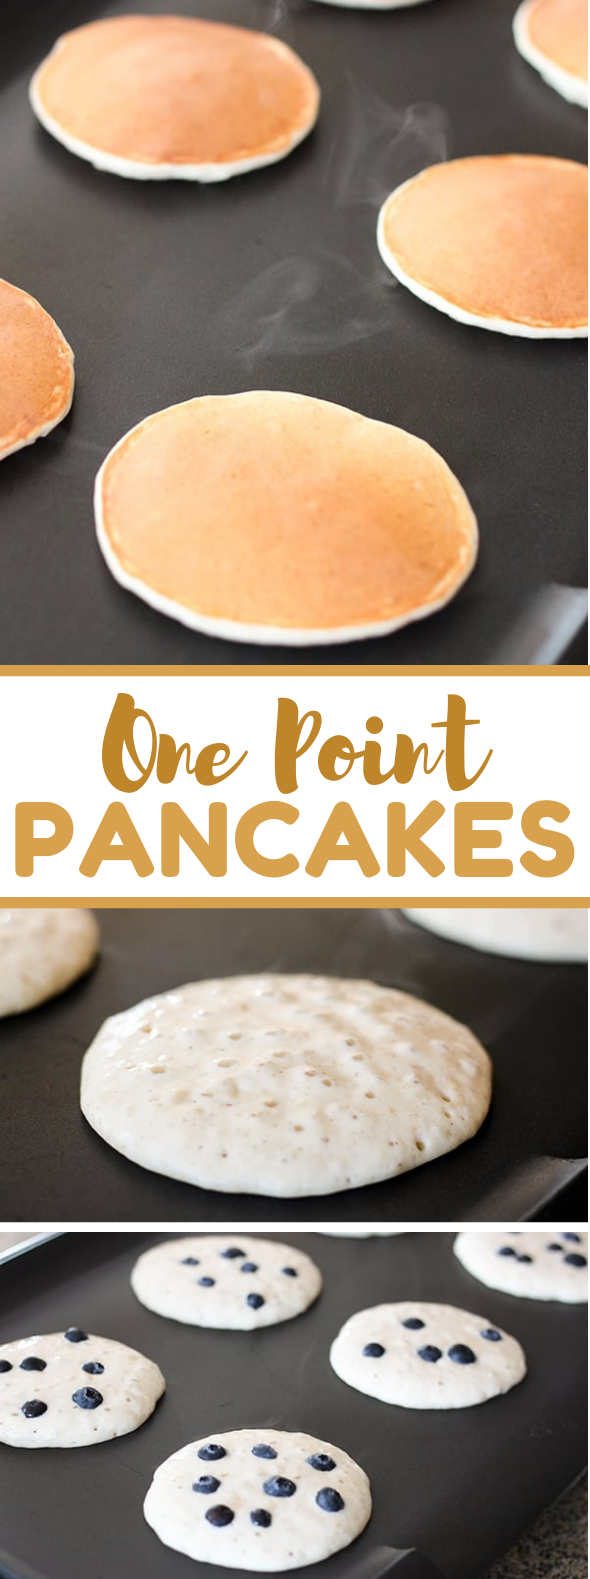 SKINNY ONE POINT WEIGHT WATCHER PANCAKES #diet #favoriterecipes